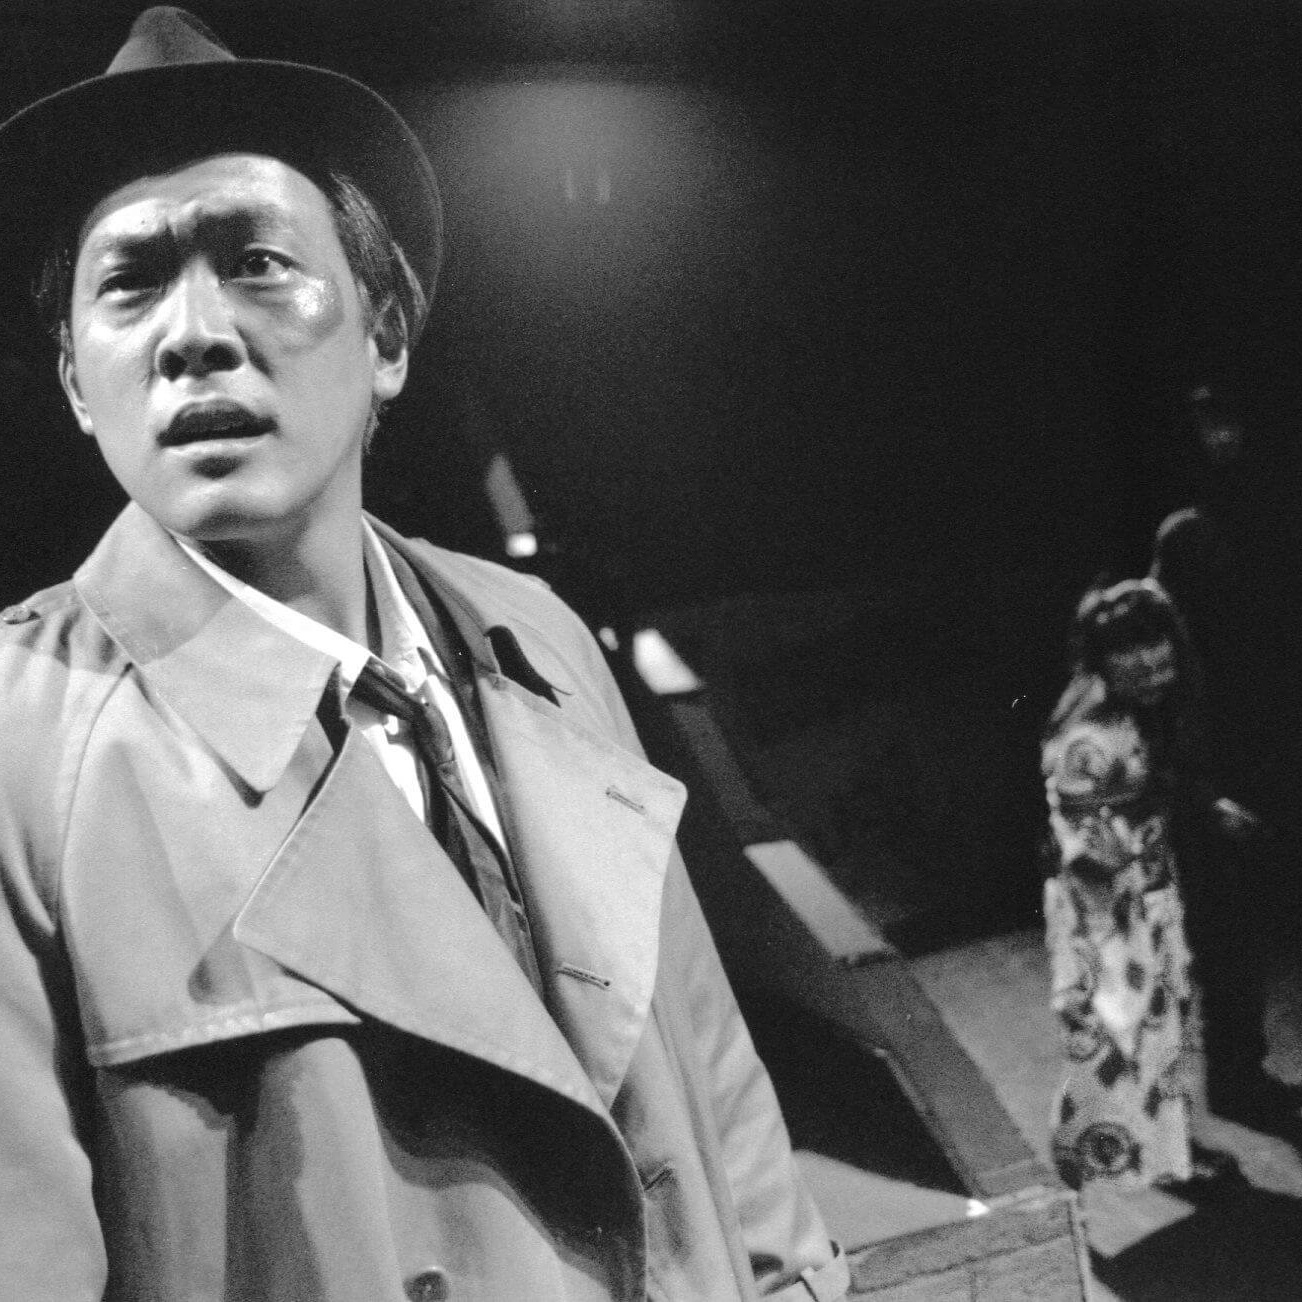 YELLOW FEVER - by R.A. SHIOMIdirected by MARC HAYASHIJuly 14 -July 31, 1994